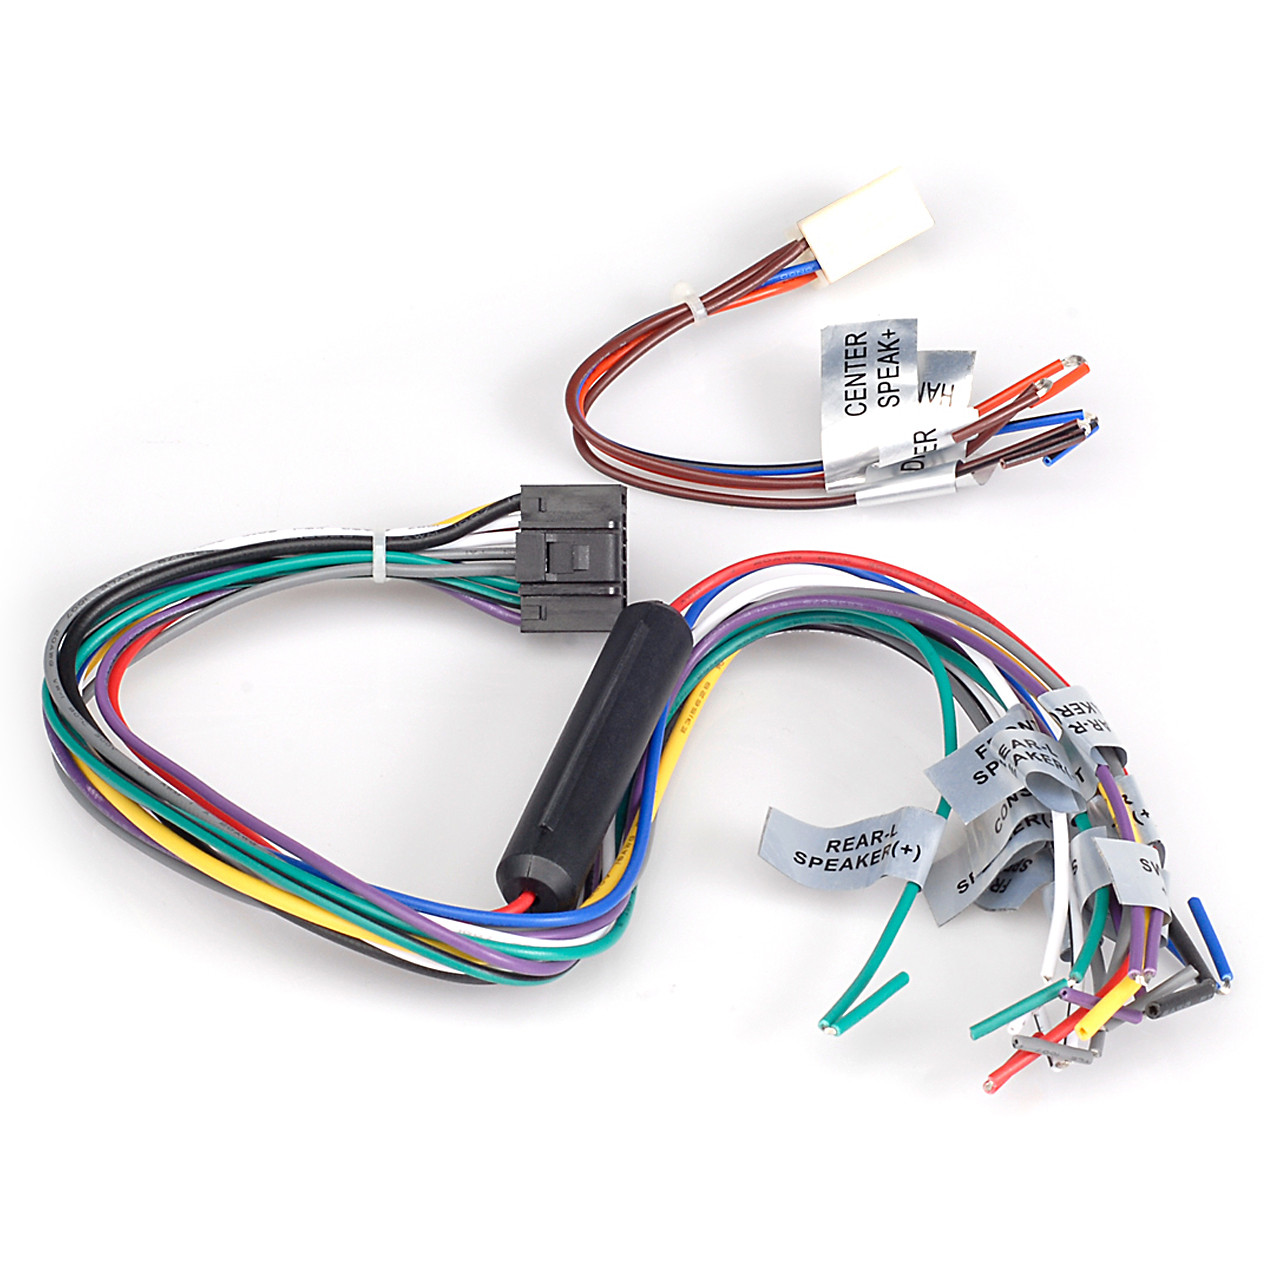 M3-LCD Harness on wire clothing, wire connector, wire ball, wire holder, wire nut, wire cap, wire leads, wire sleeve, wire antenna, wire lamp,